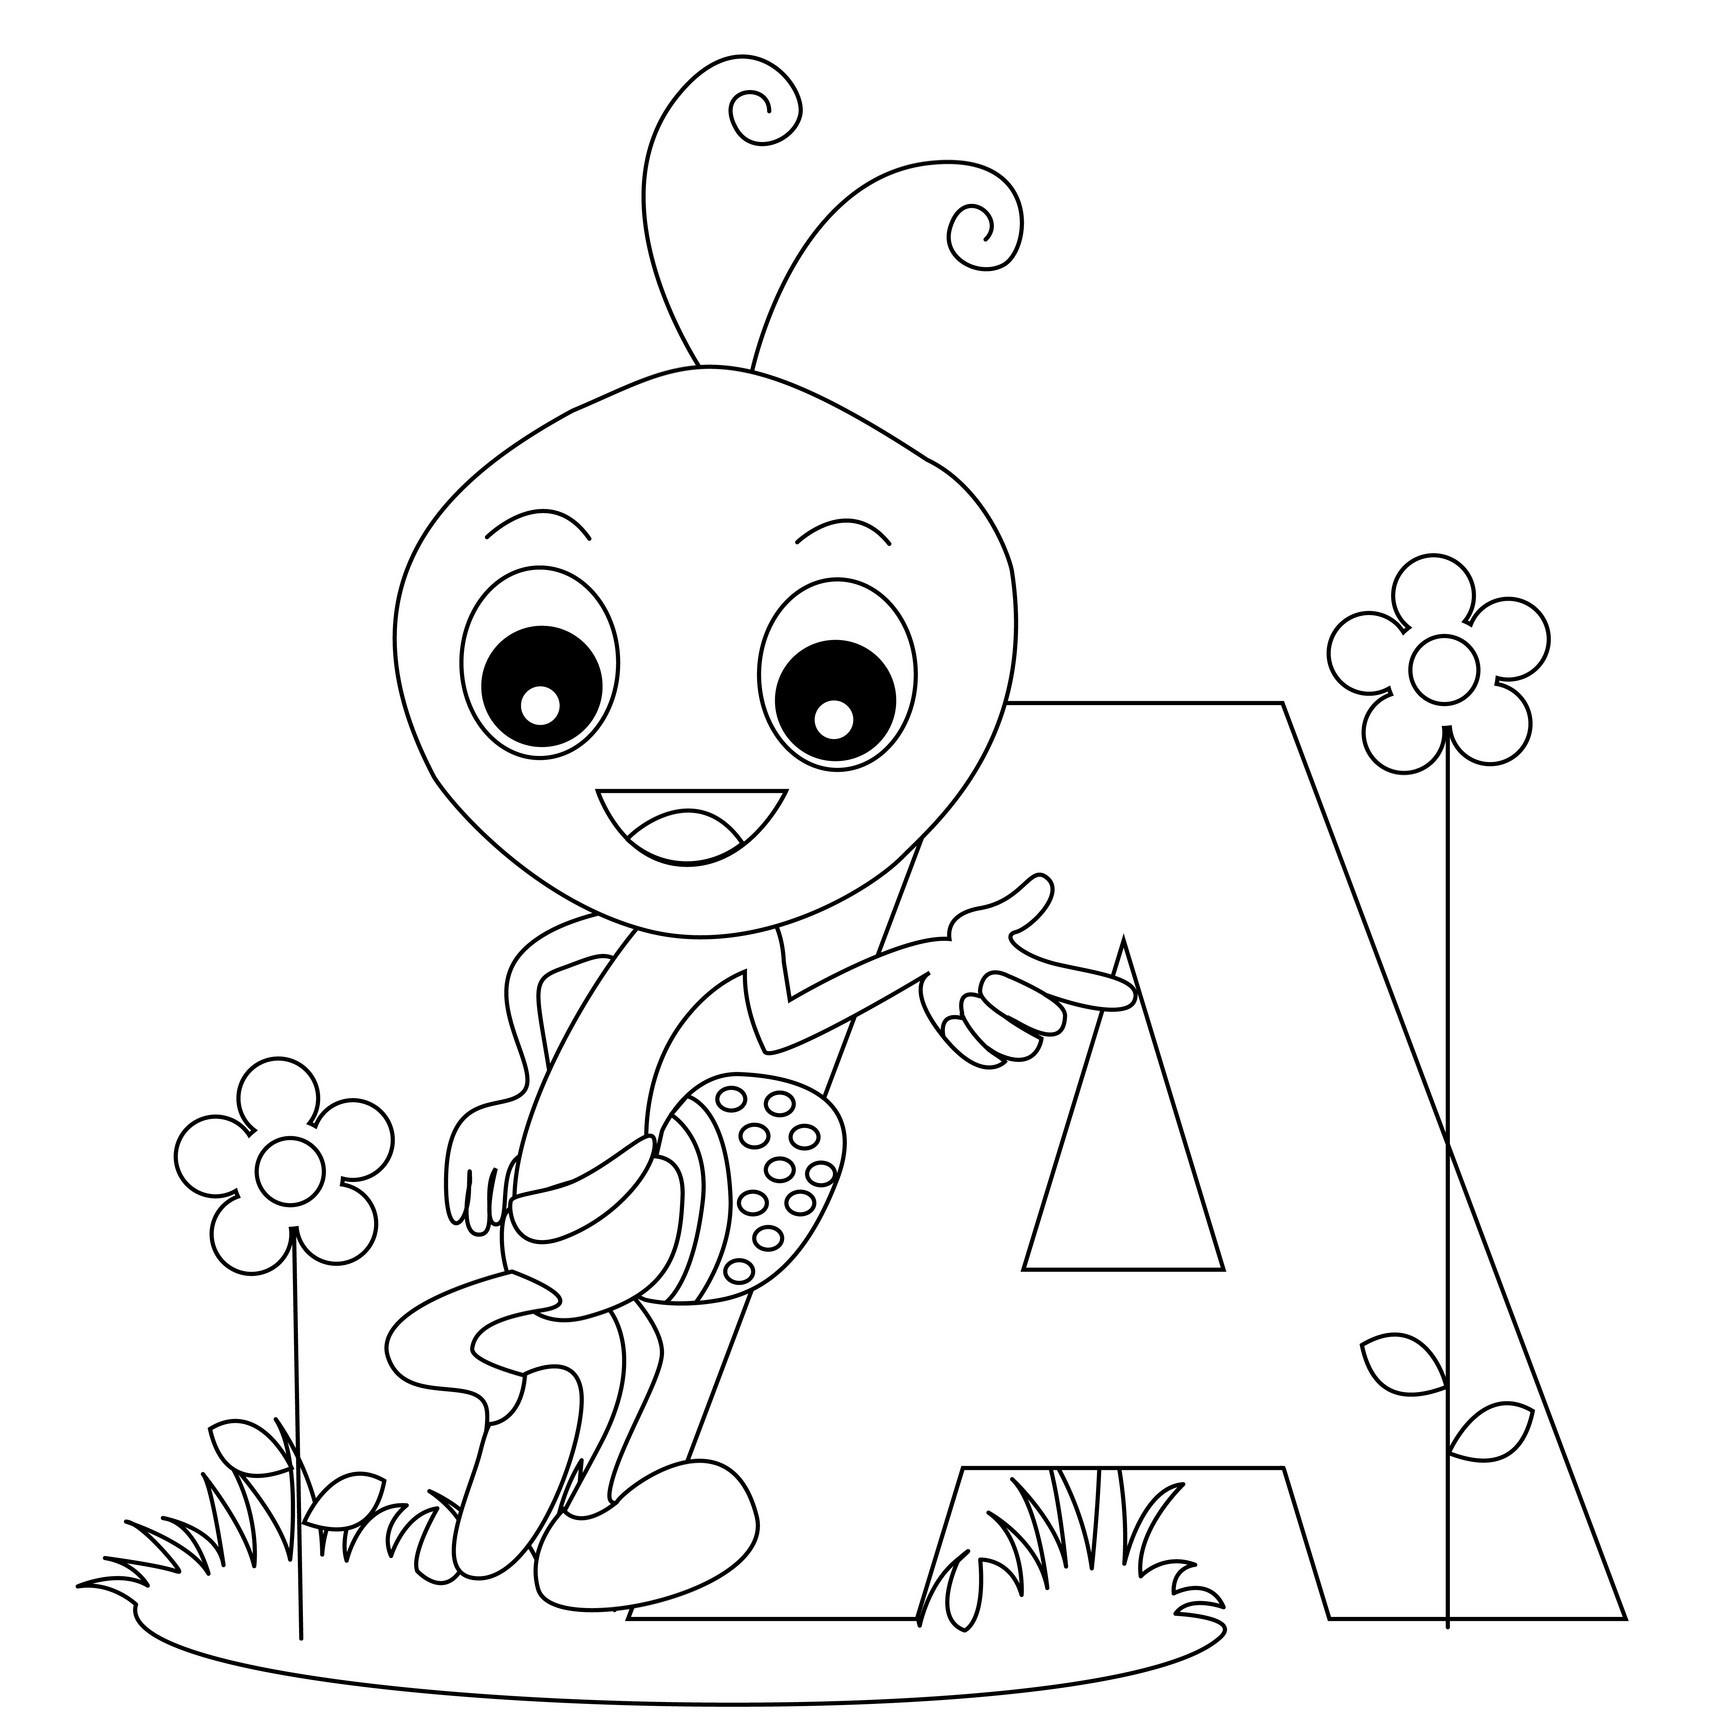 Coloring Pages For Writing : Free printable alphabet coloring pages for kids best